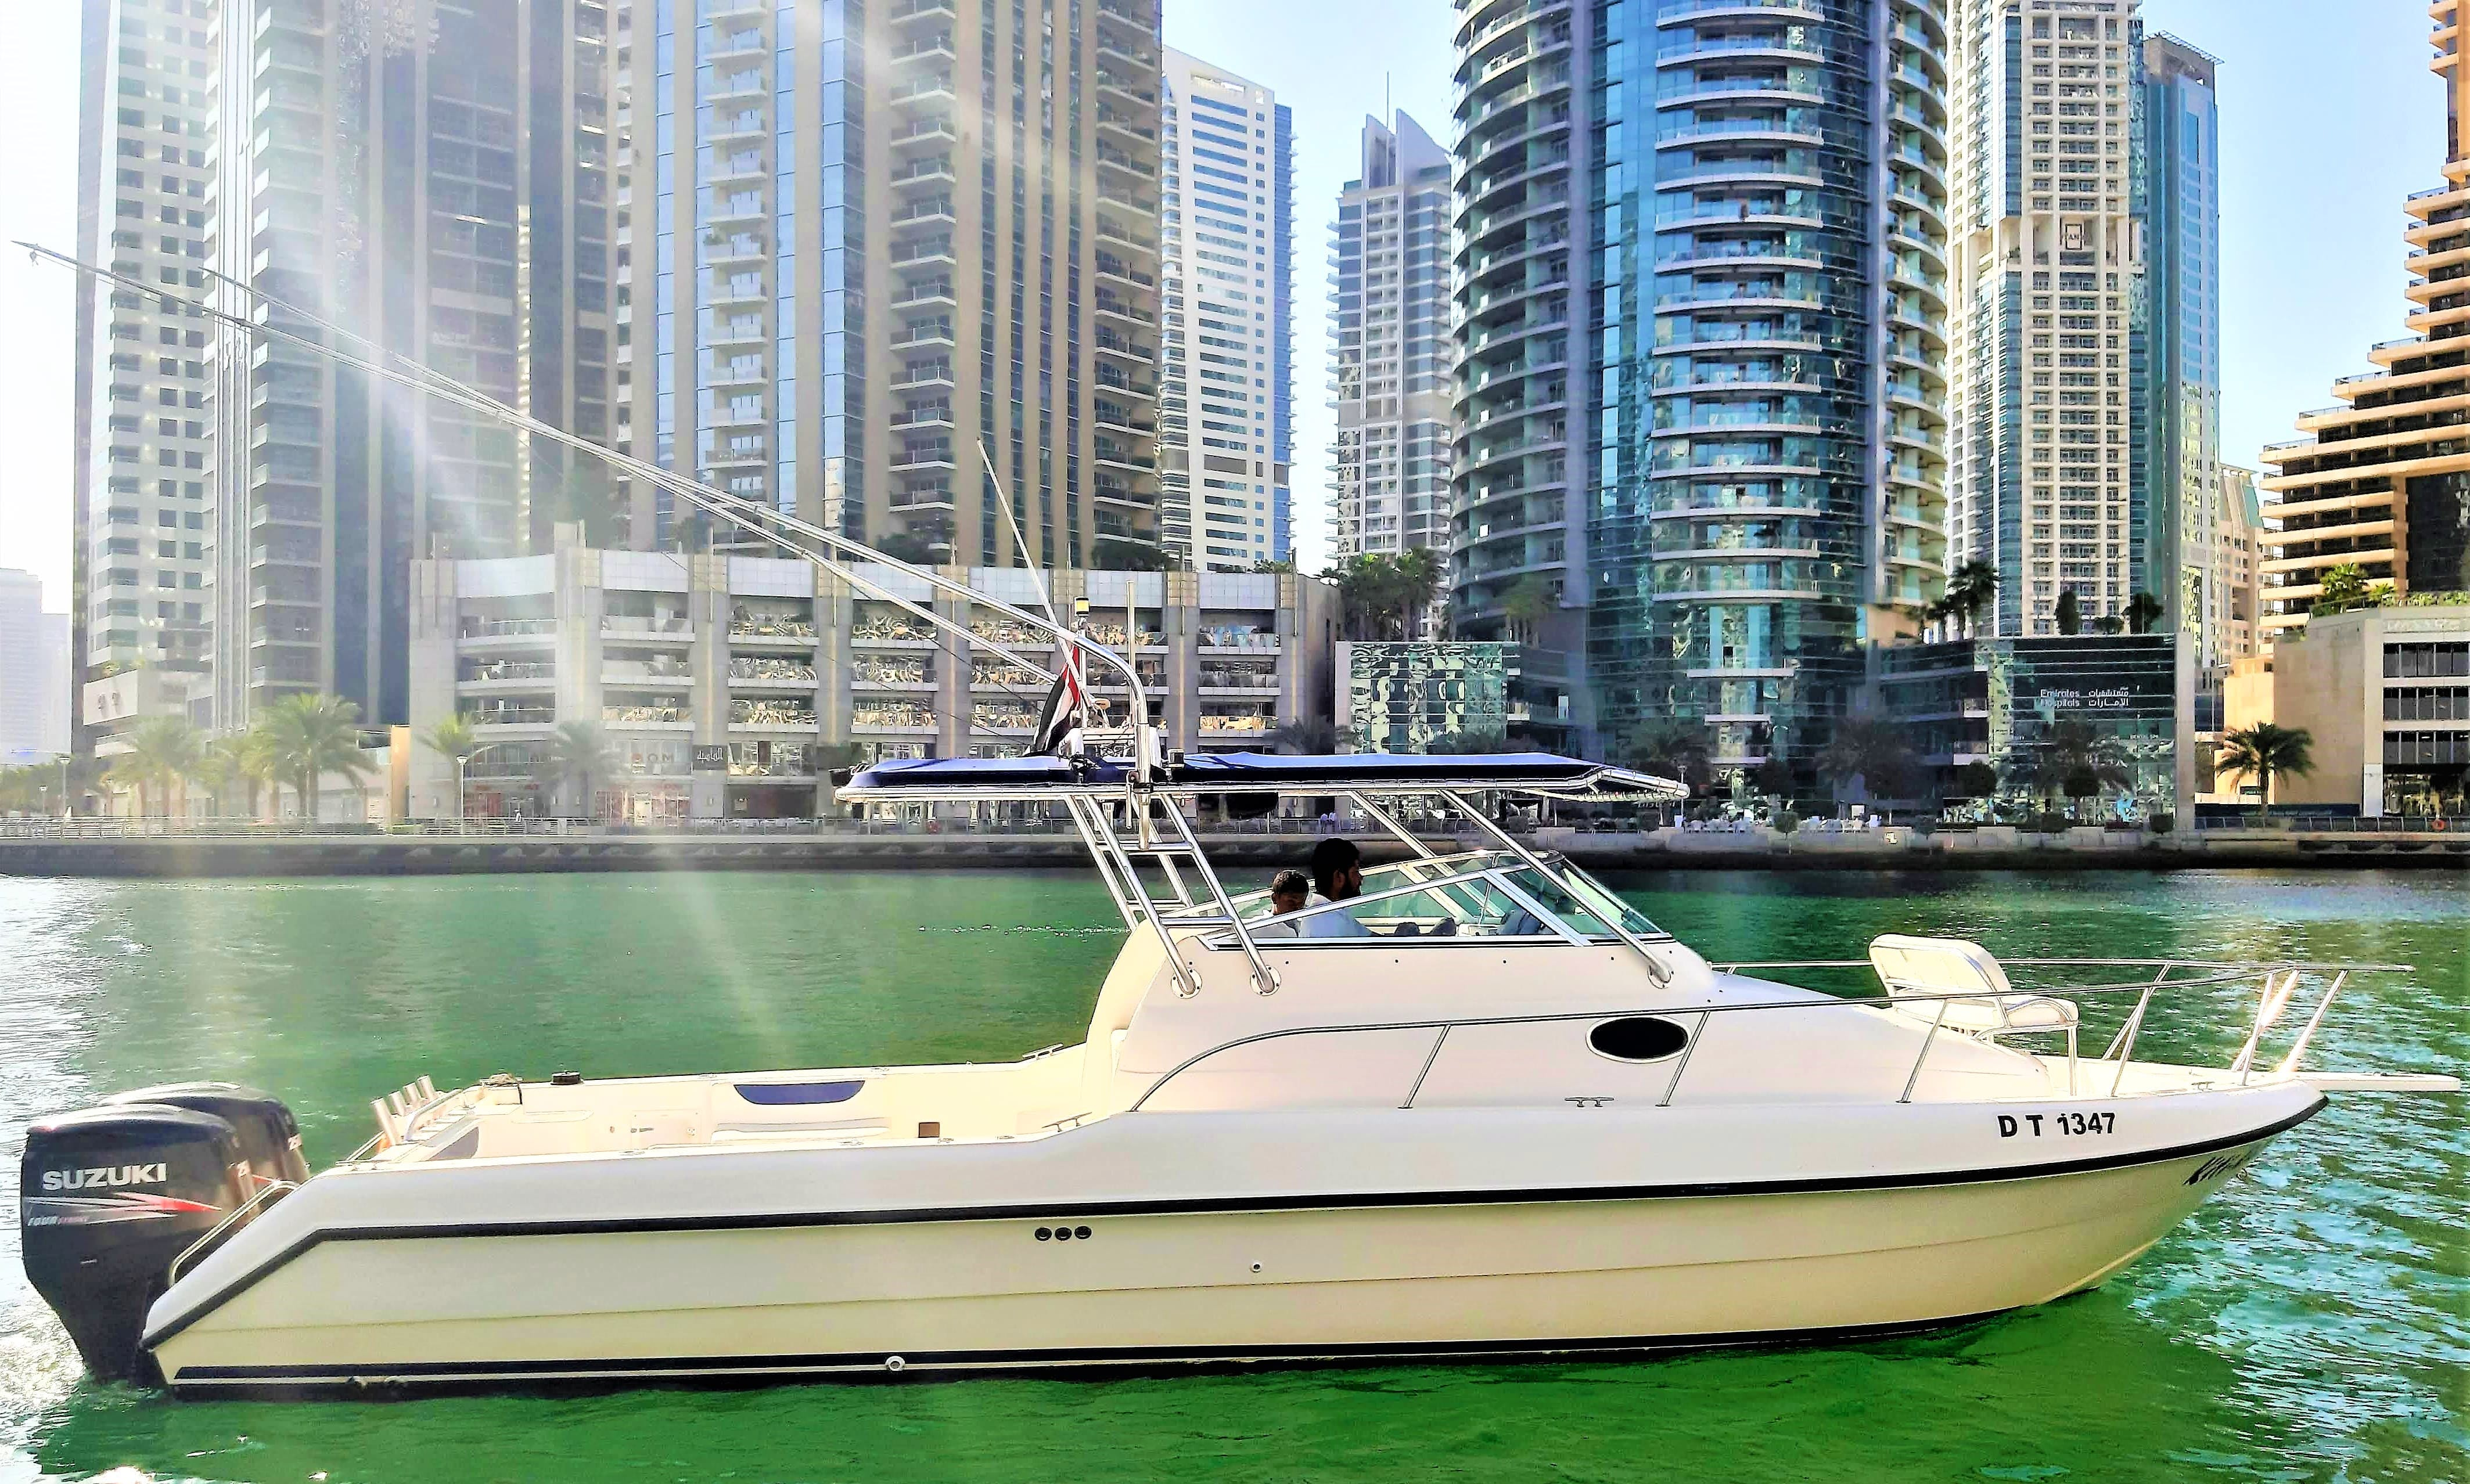 Boat Tour Dubai / Private Boat Tour in Dubai / Dubai Marina Boat Tour /